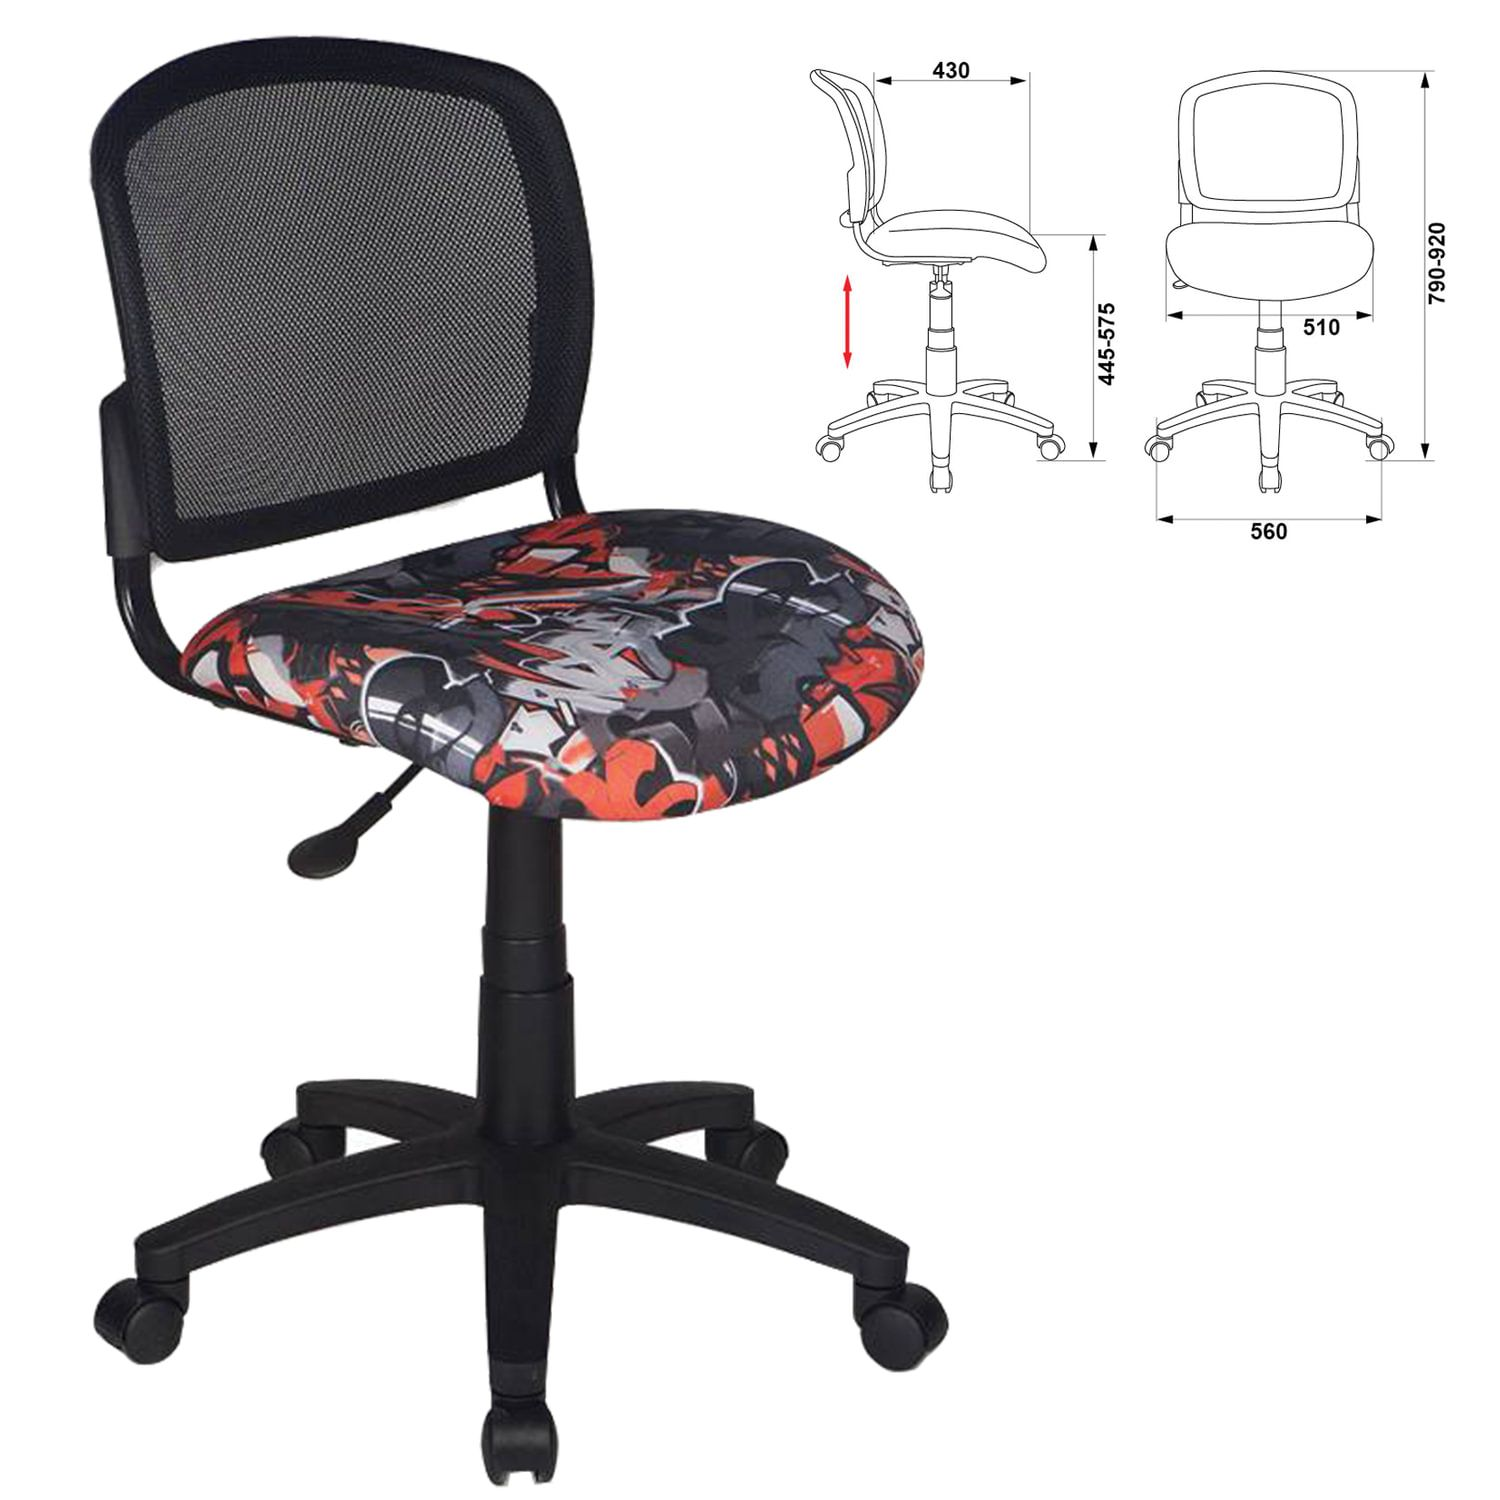 Chair CH-296NX / GRAFFITY, without armrests, black with a pattern